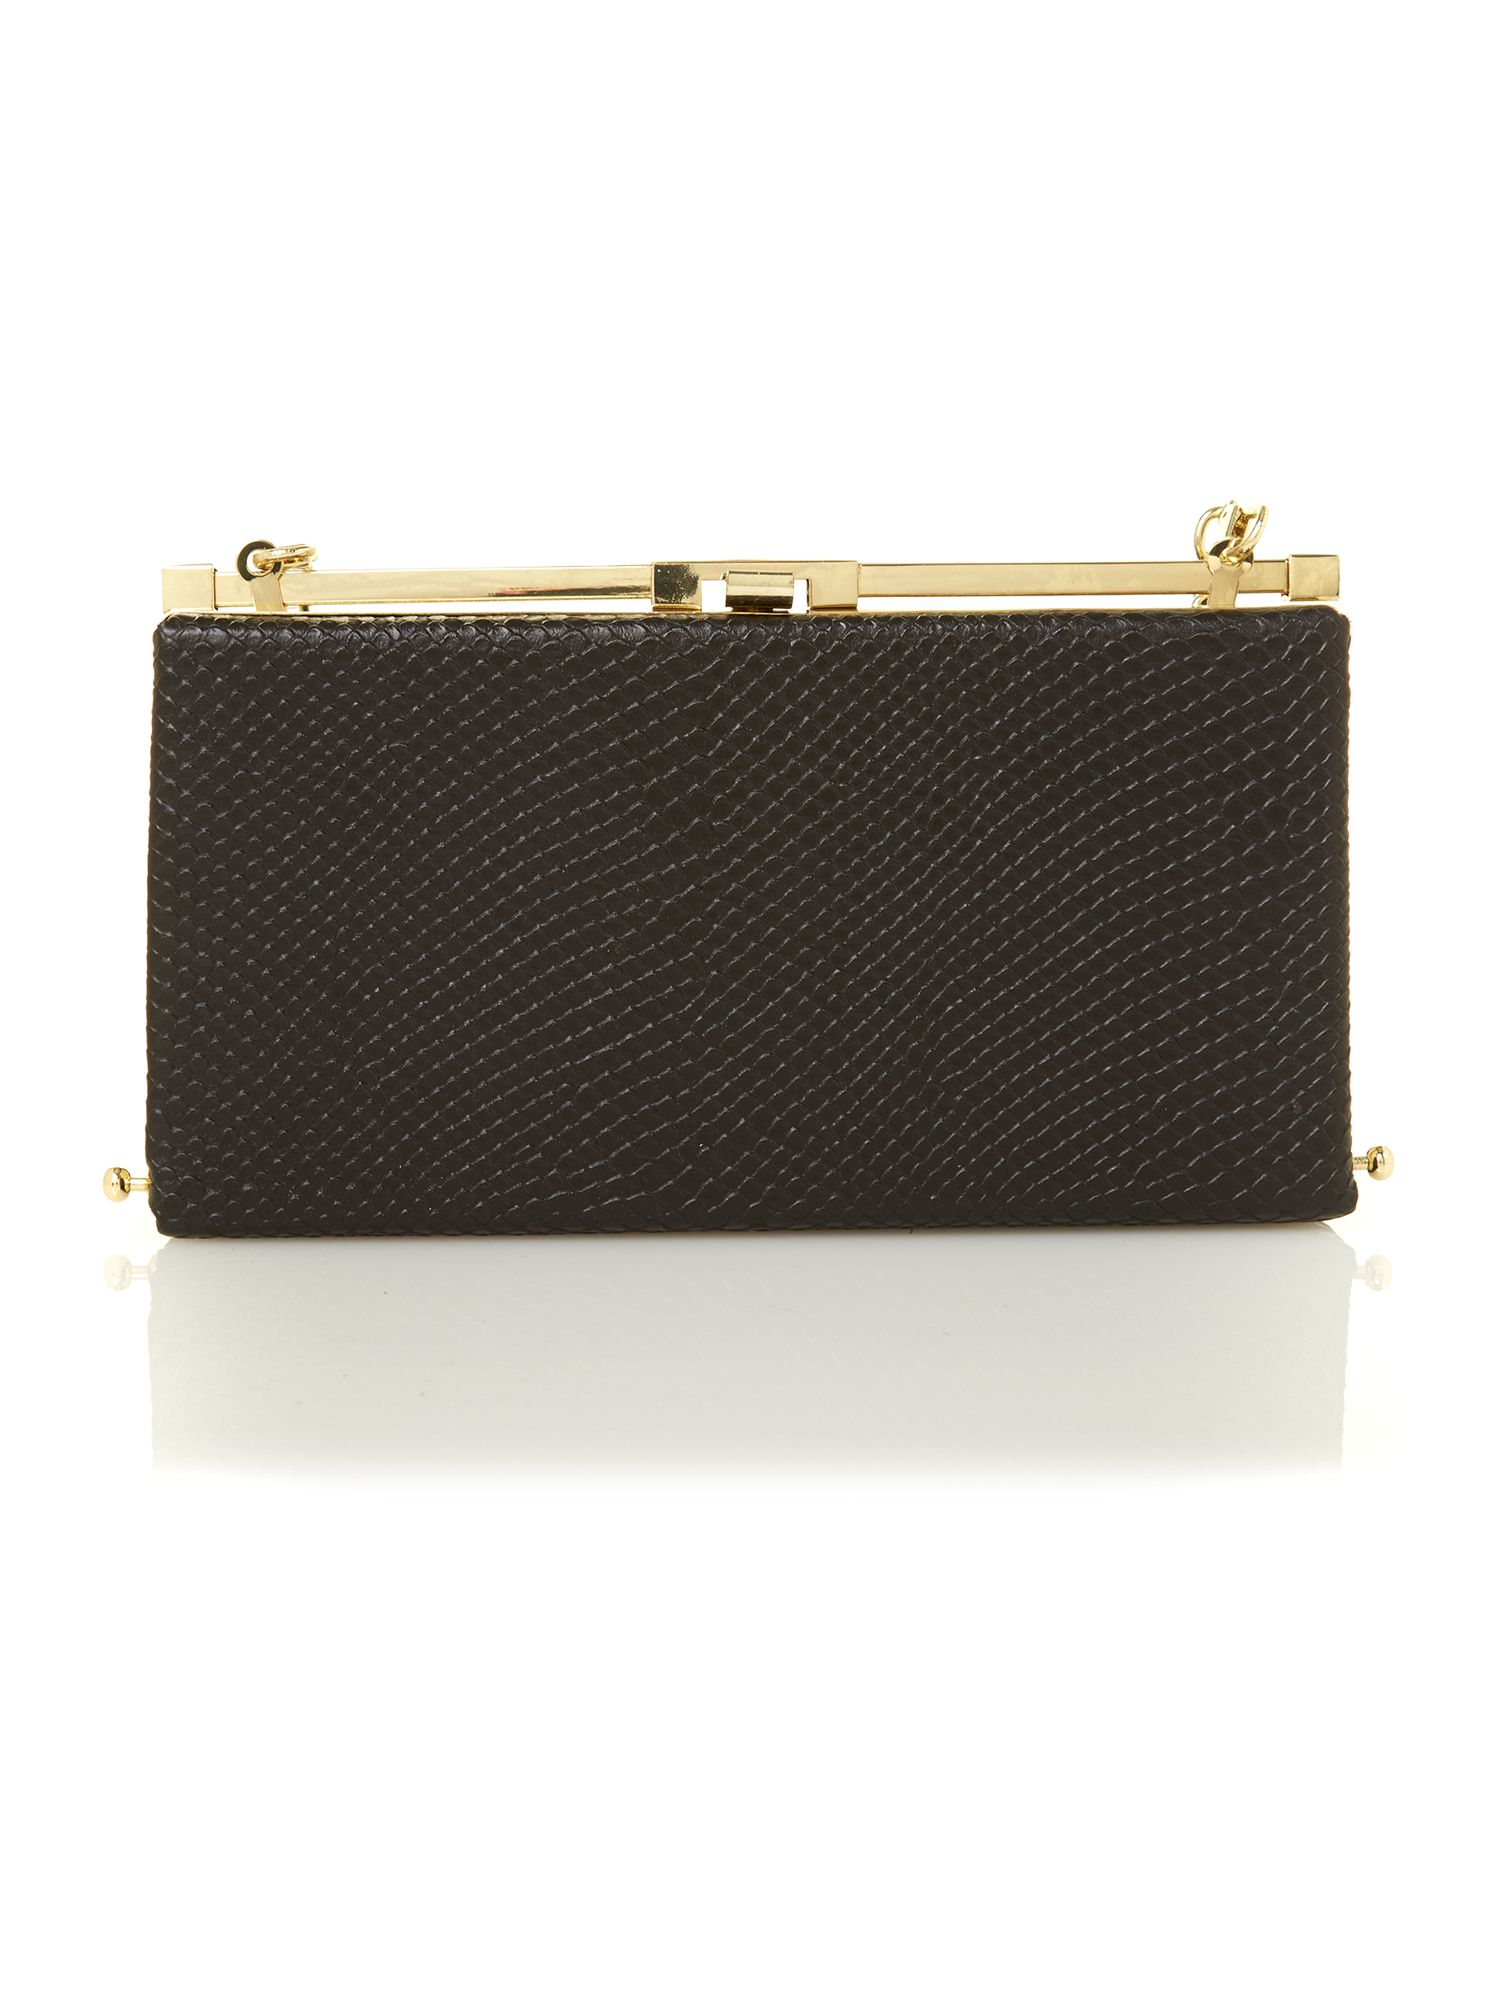 Eva clutch bag